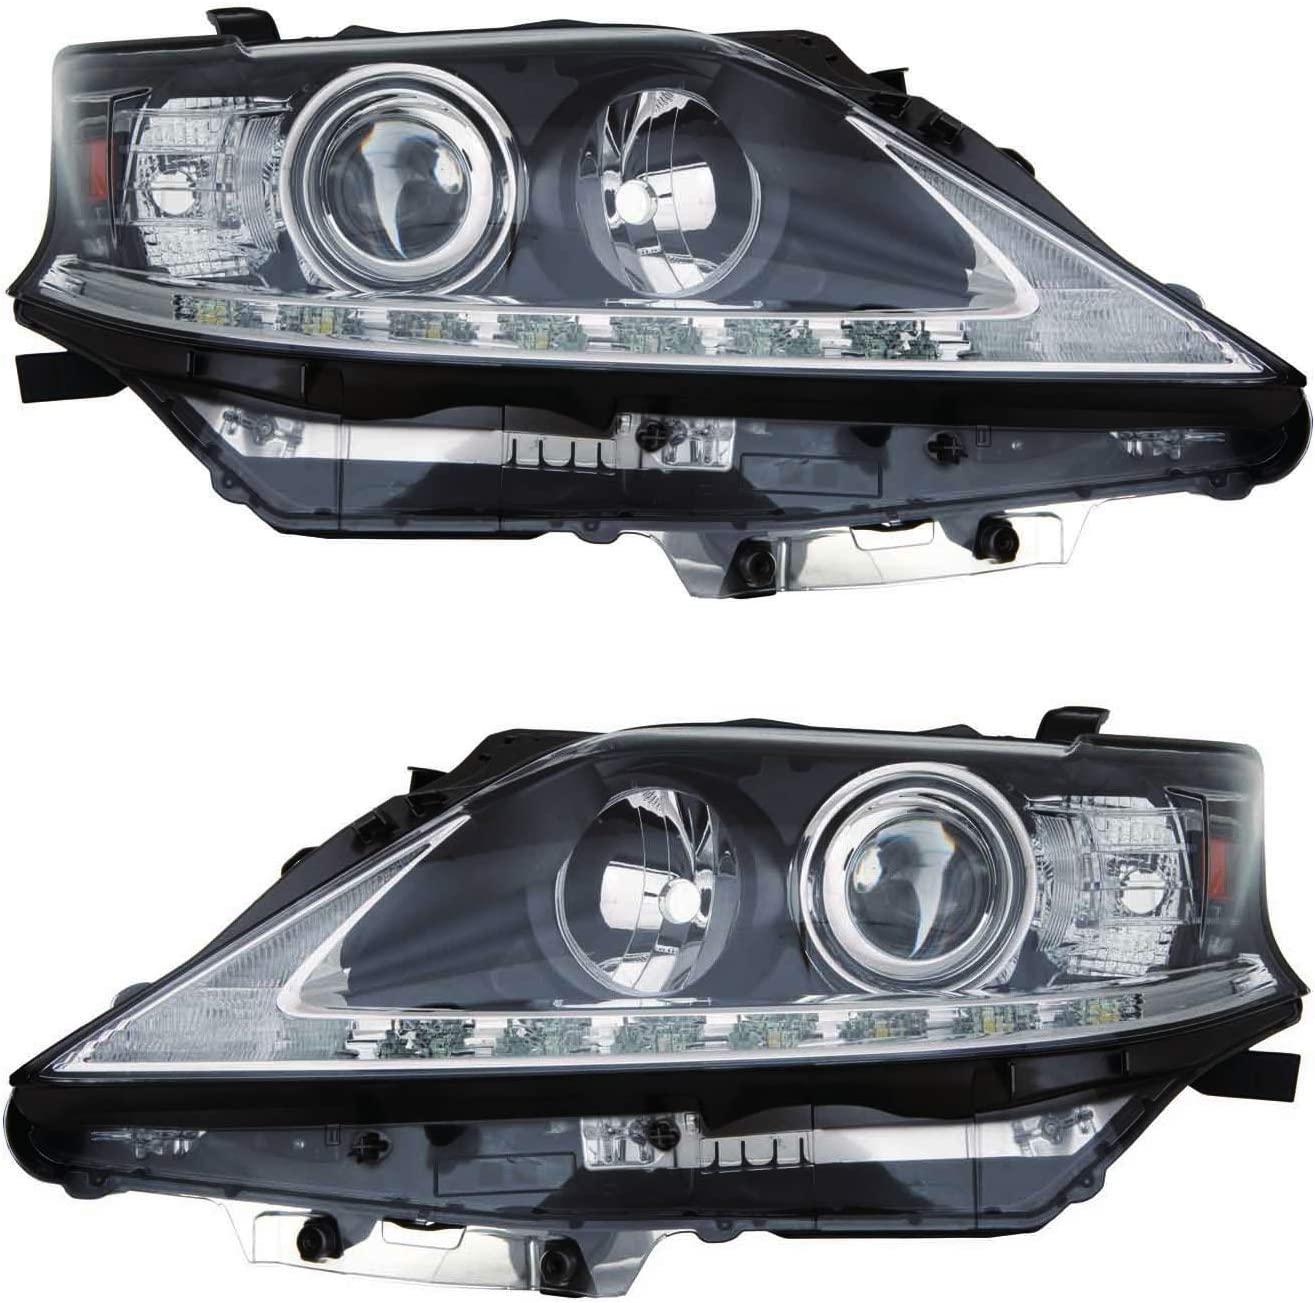 LEXUS OEM FACTORY FRONT DRIVERS MIRROR TURN SIGNAL LAMP 2009-2015 RX350 RX450H